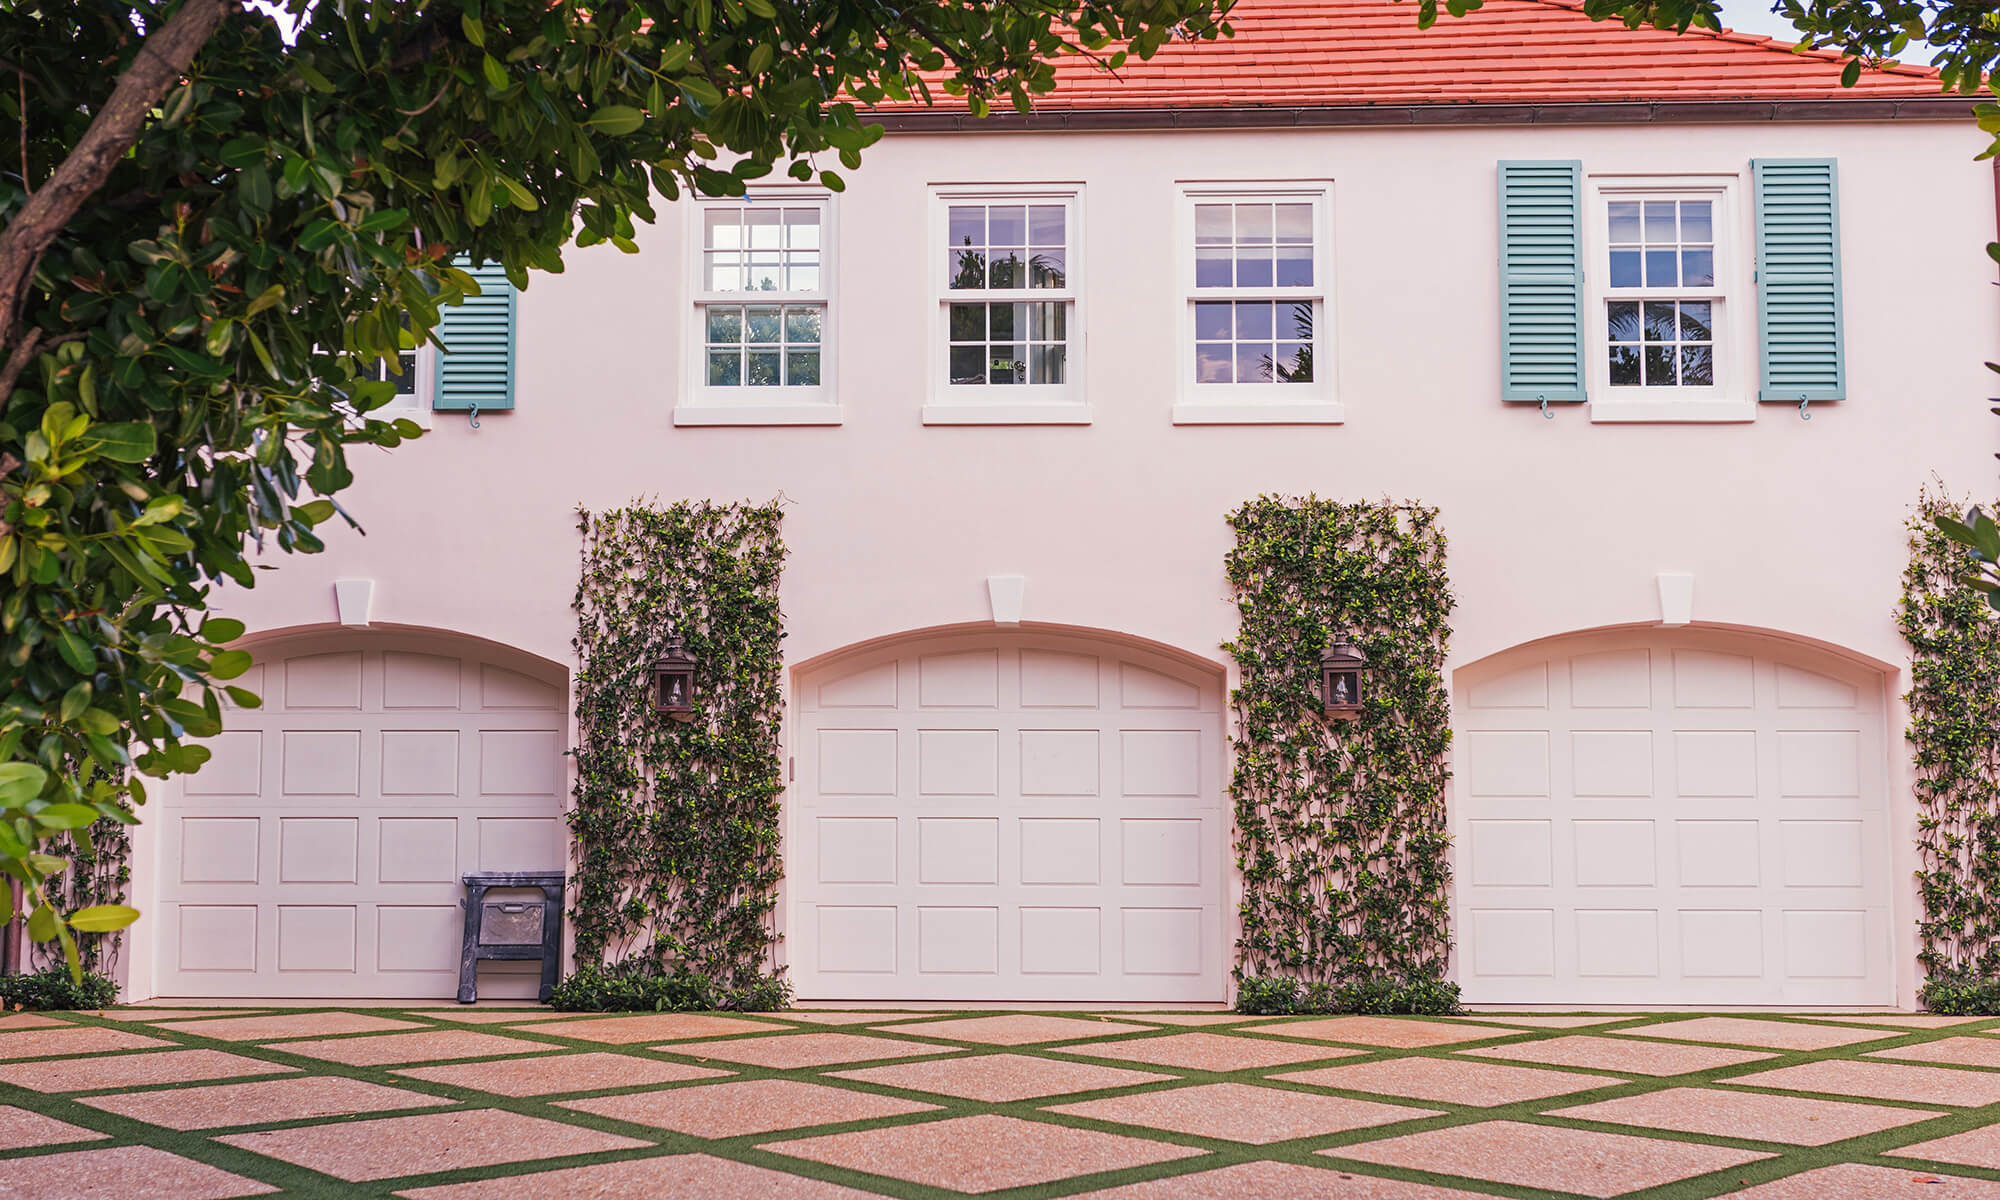 pink house with three garages